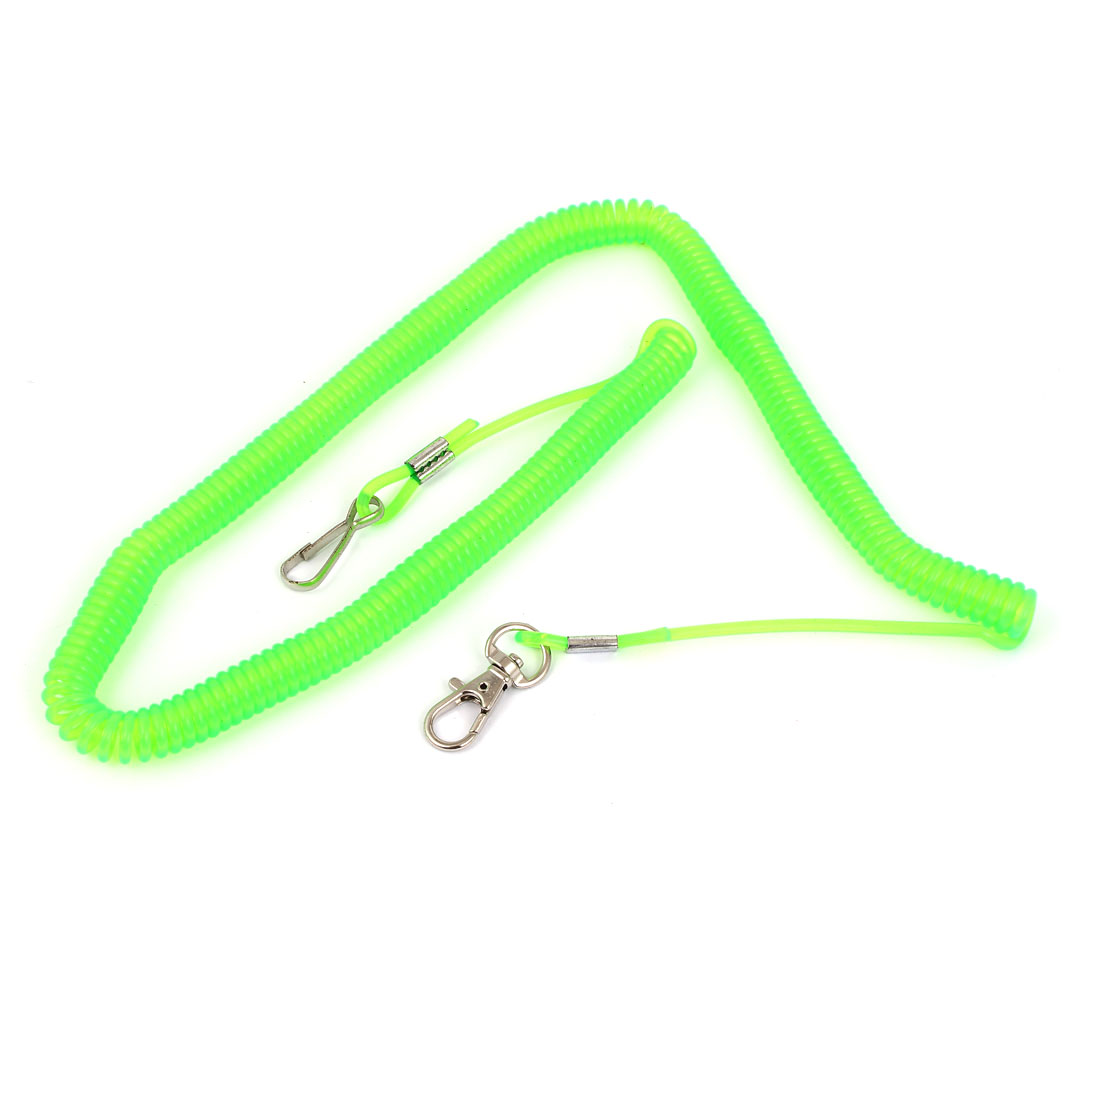 Angling Fishing Rod Lime Green Plastic Stretchy Coiled Rope Cable 4M Long